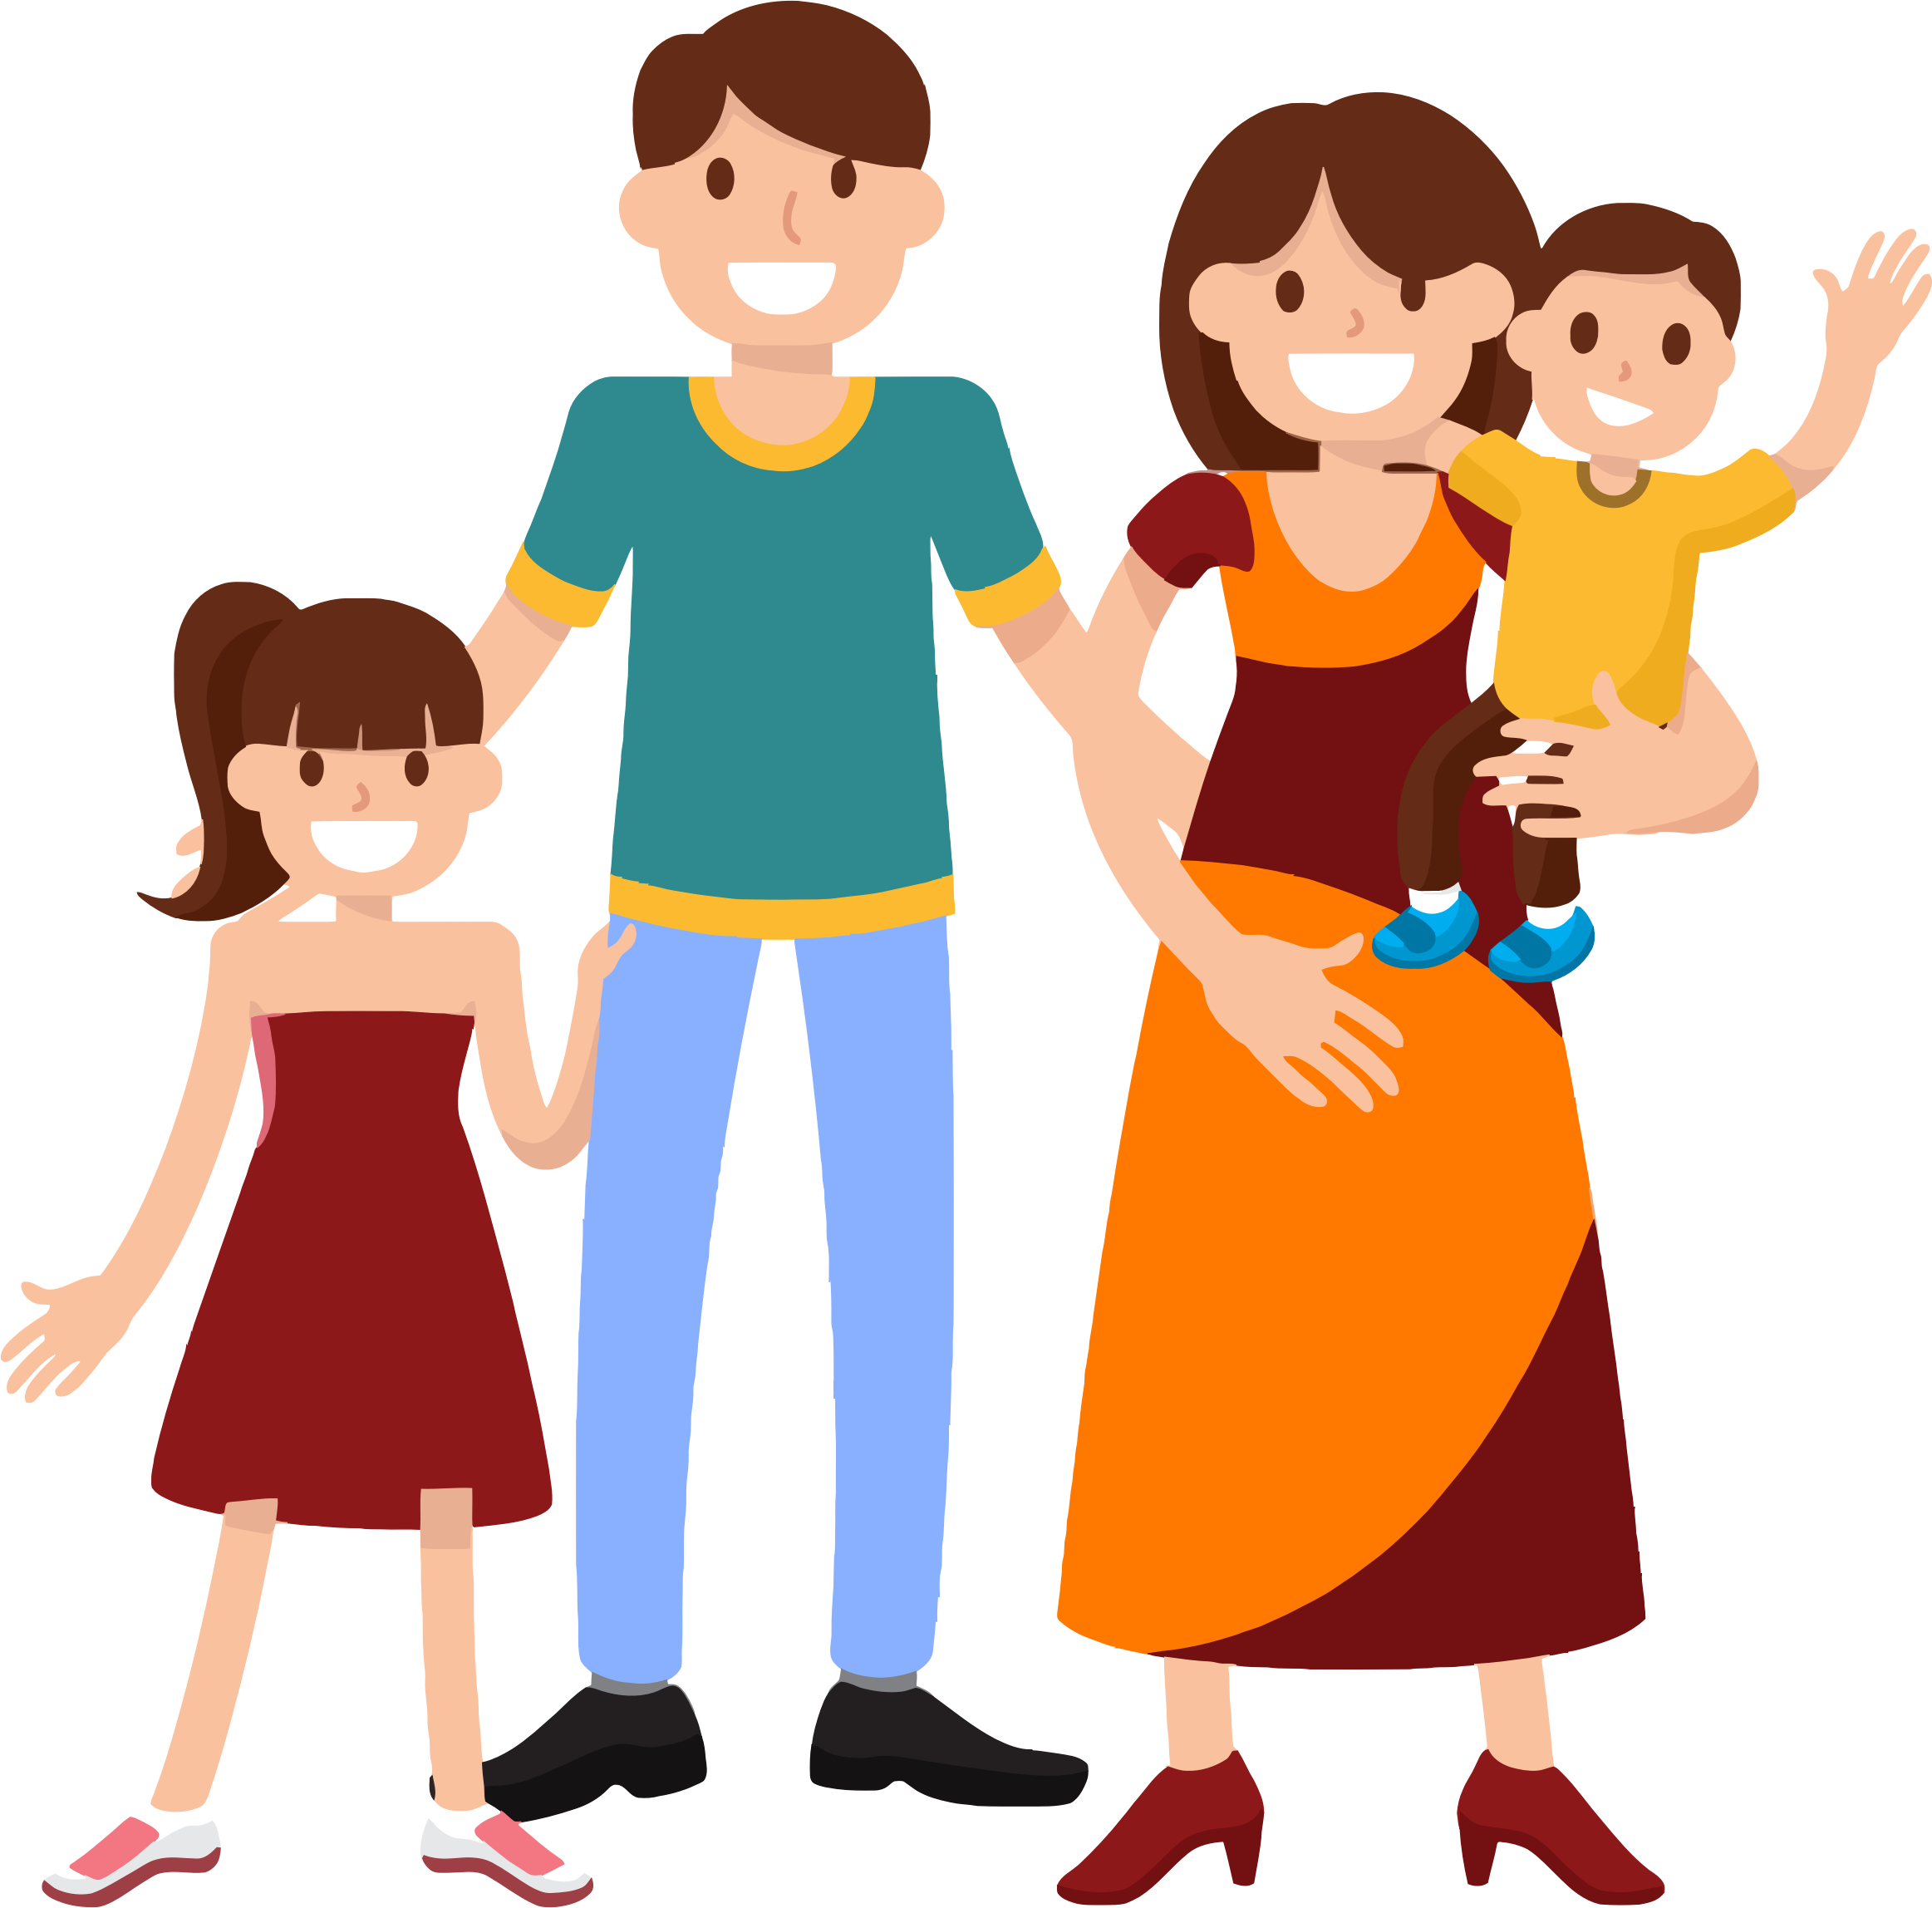 Very happy smiling icons. Kindergarten clipart family